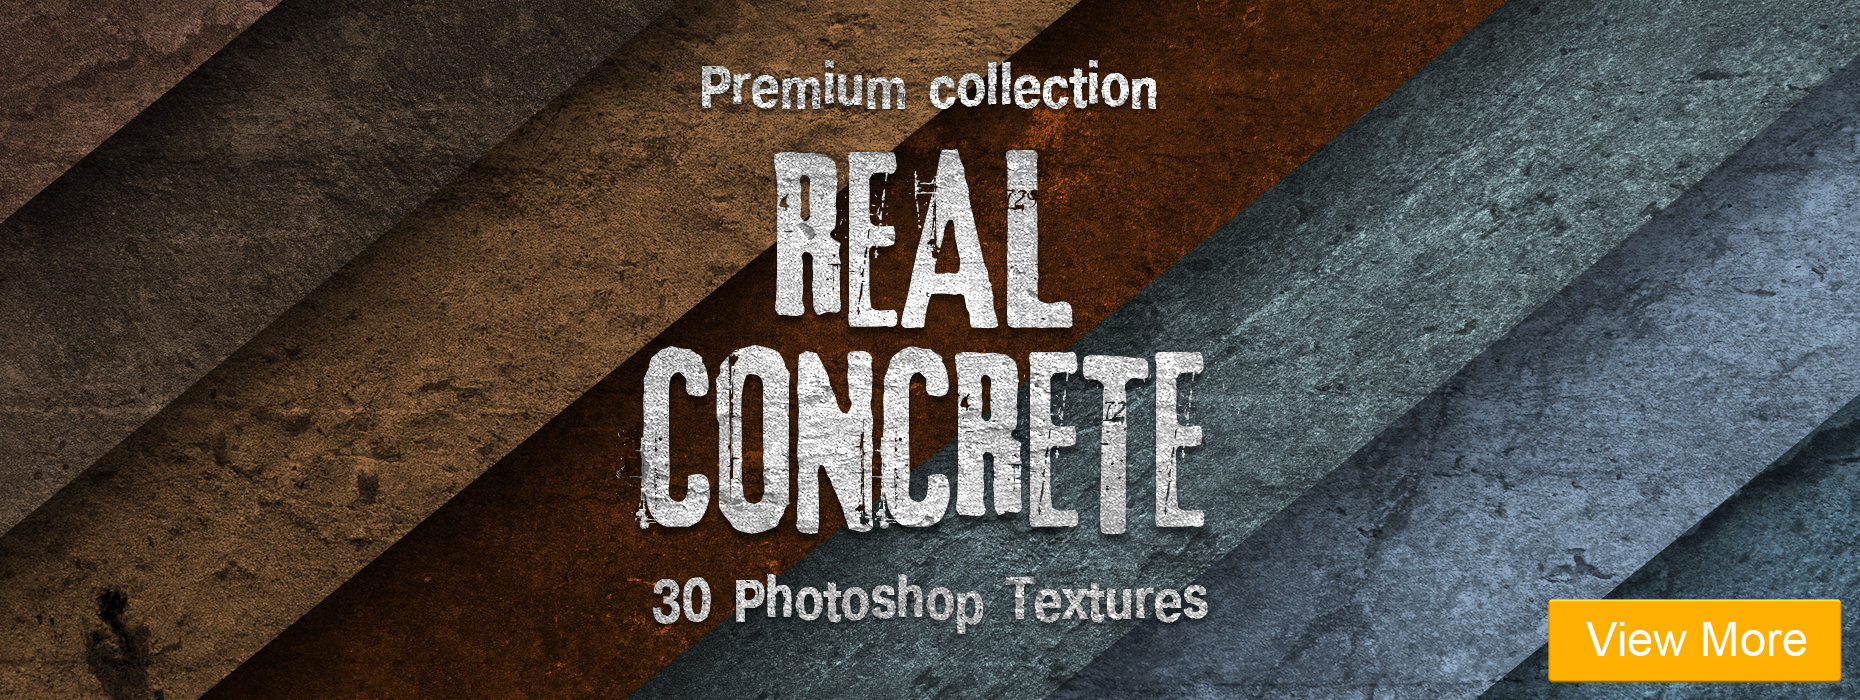 texture for photoshop stone free vintage portrait lightroom presets banner girl